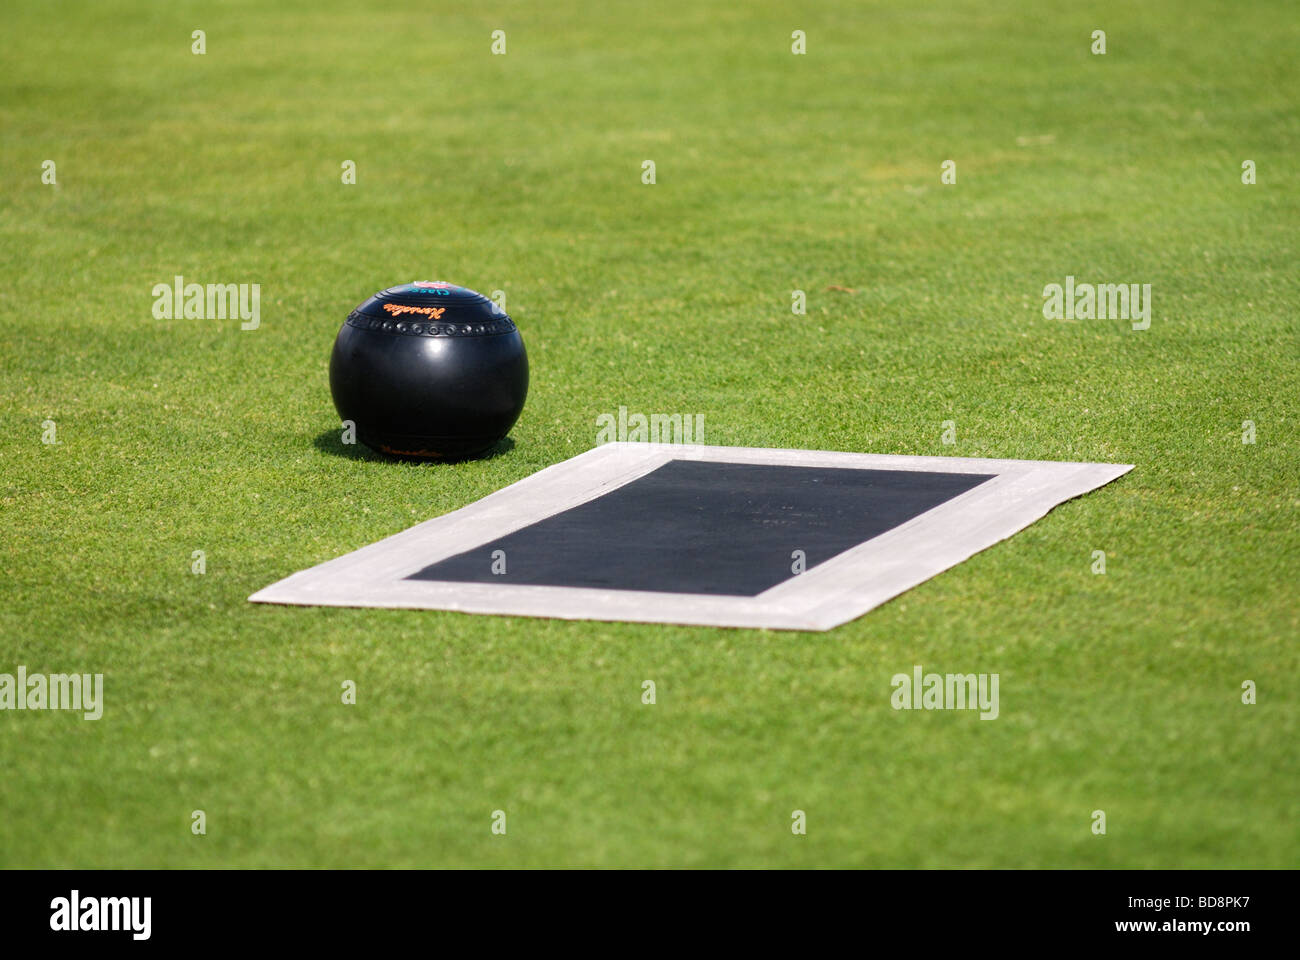 A lawn bowls mat and ball on the lawn - Stock Image